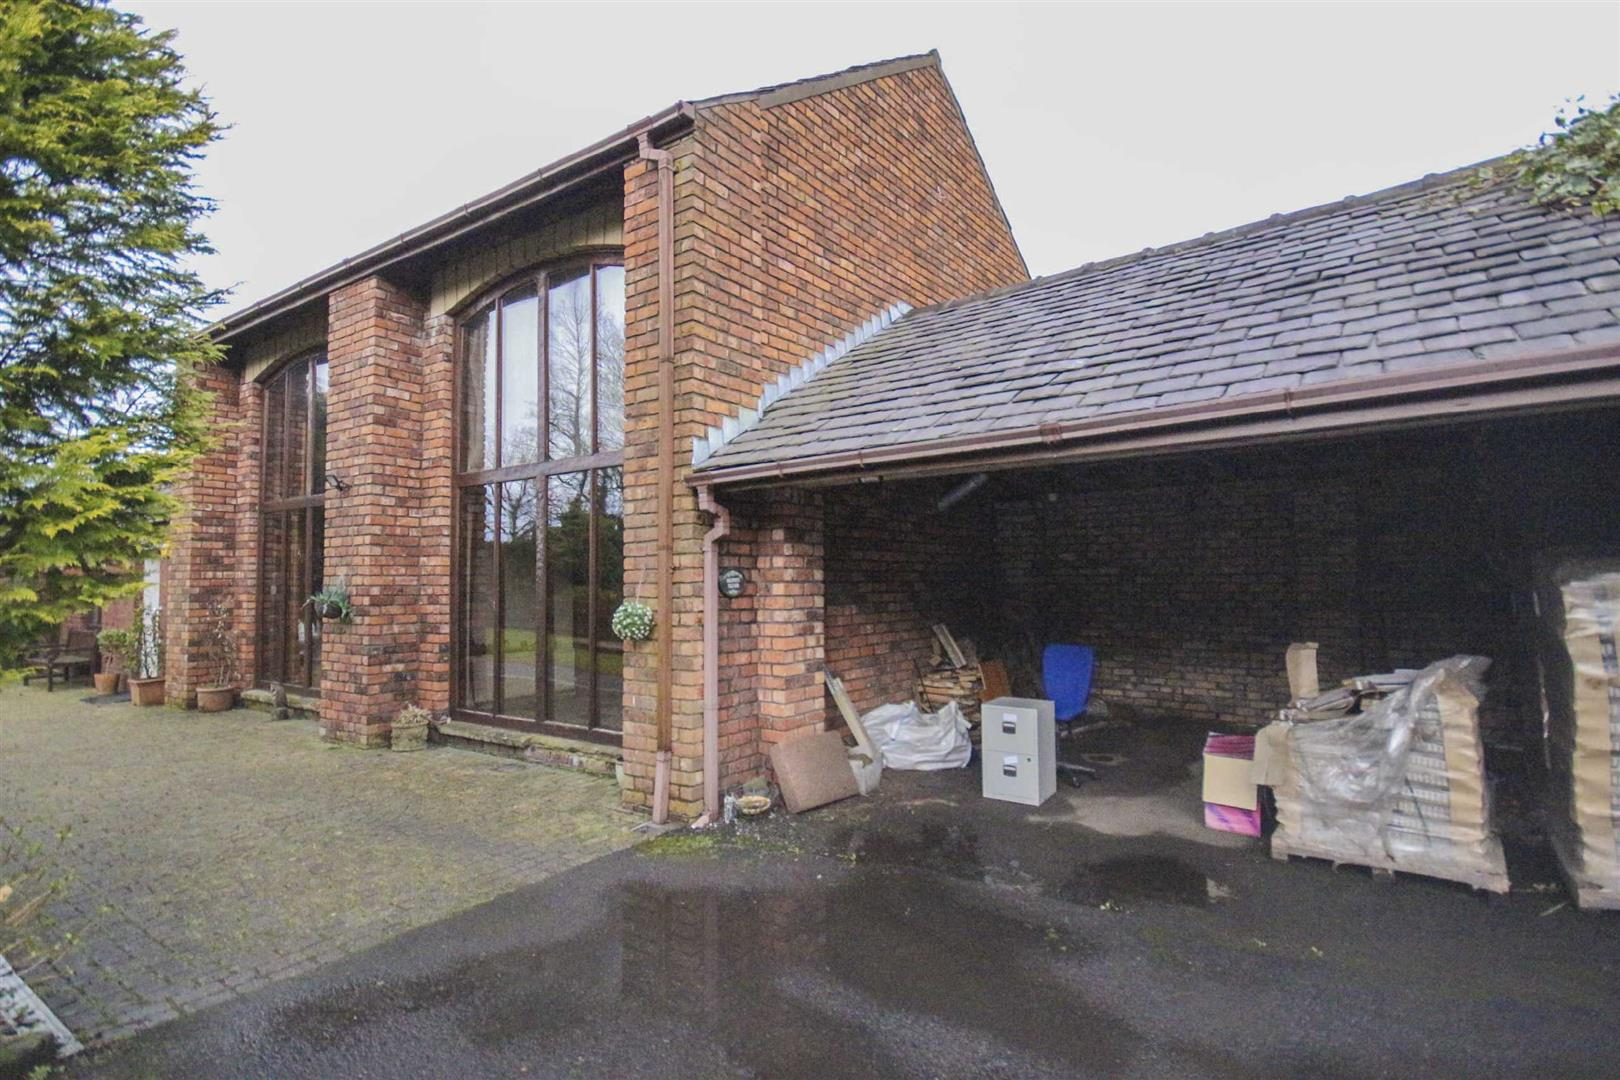 3 Bedroom Barn Conversion For Sale - Image 28